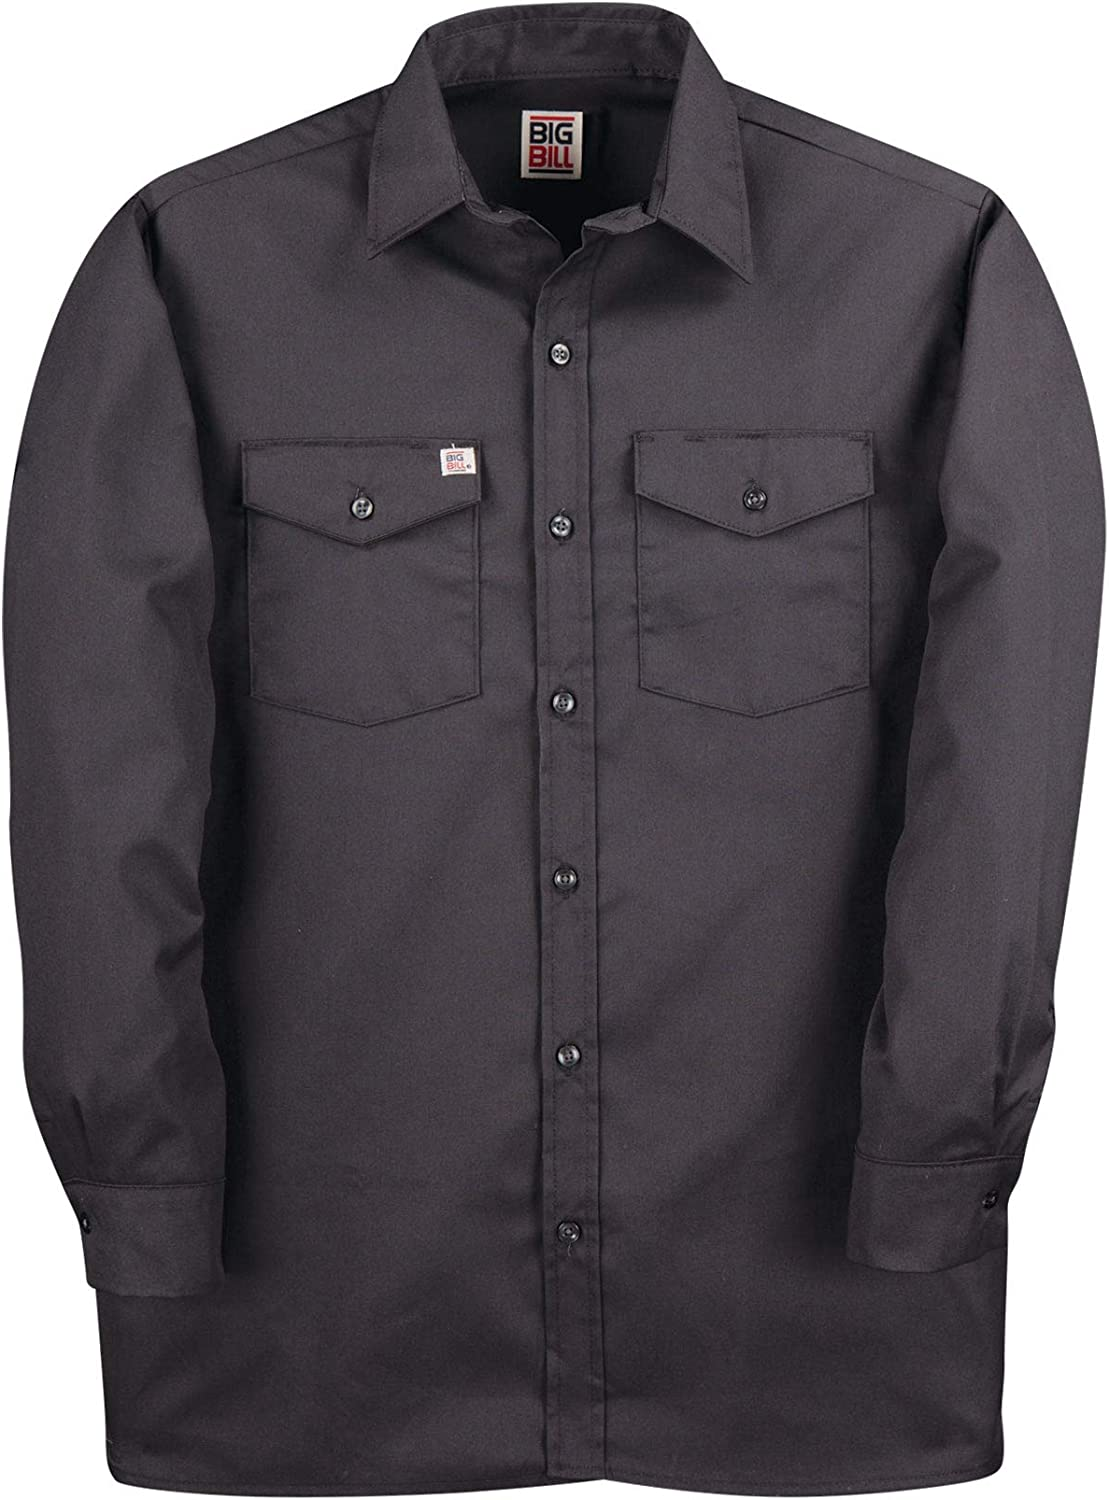 Regular and Big and Tall Long Sleeve Premium Work Shirts to 5XB and 5XT in 5 Colors Made in Canada